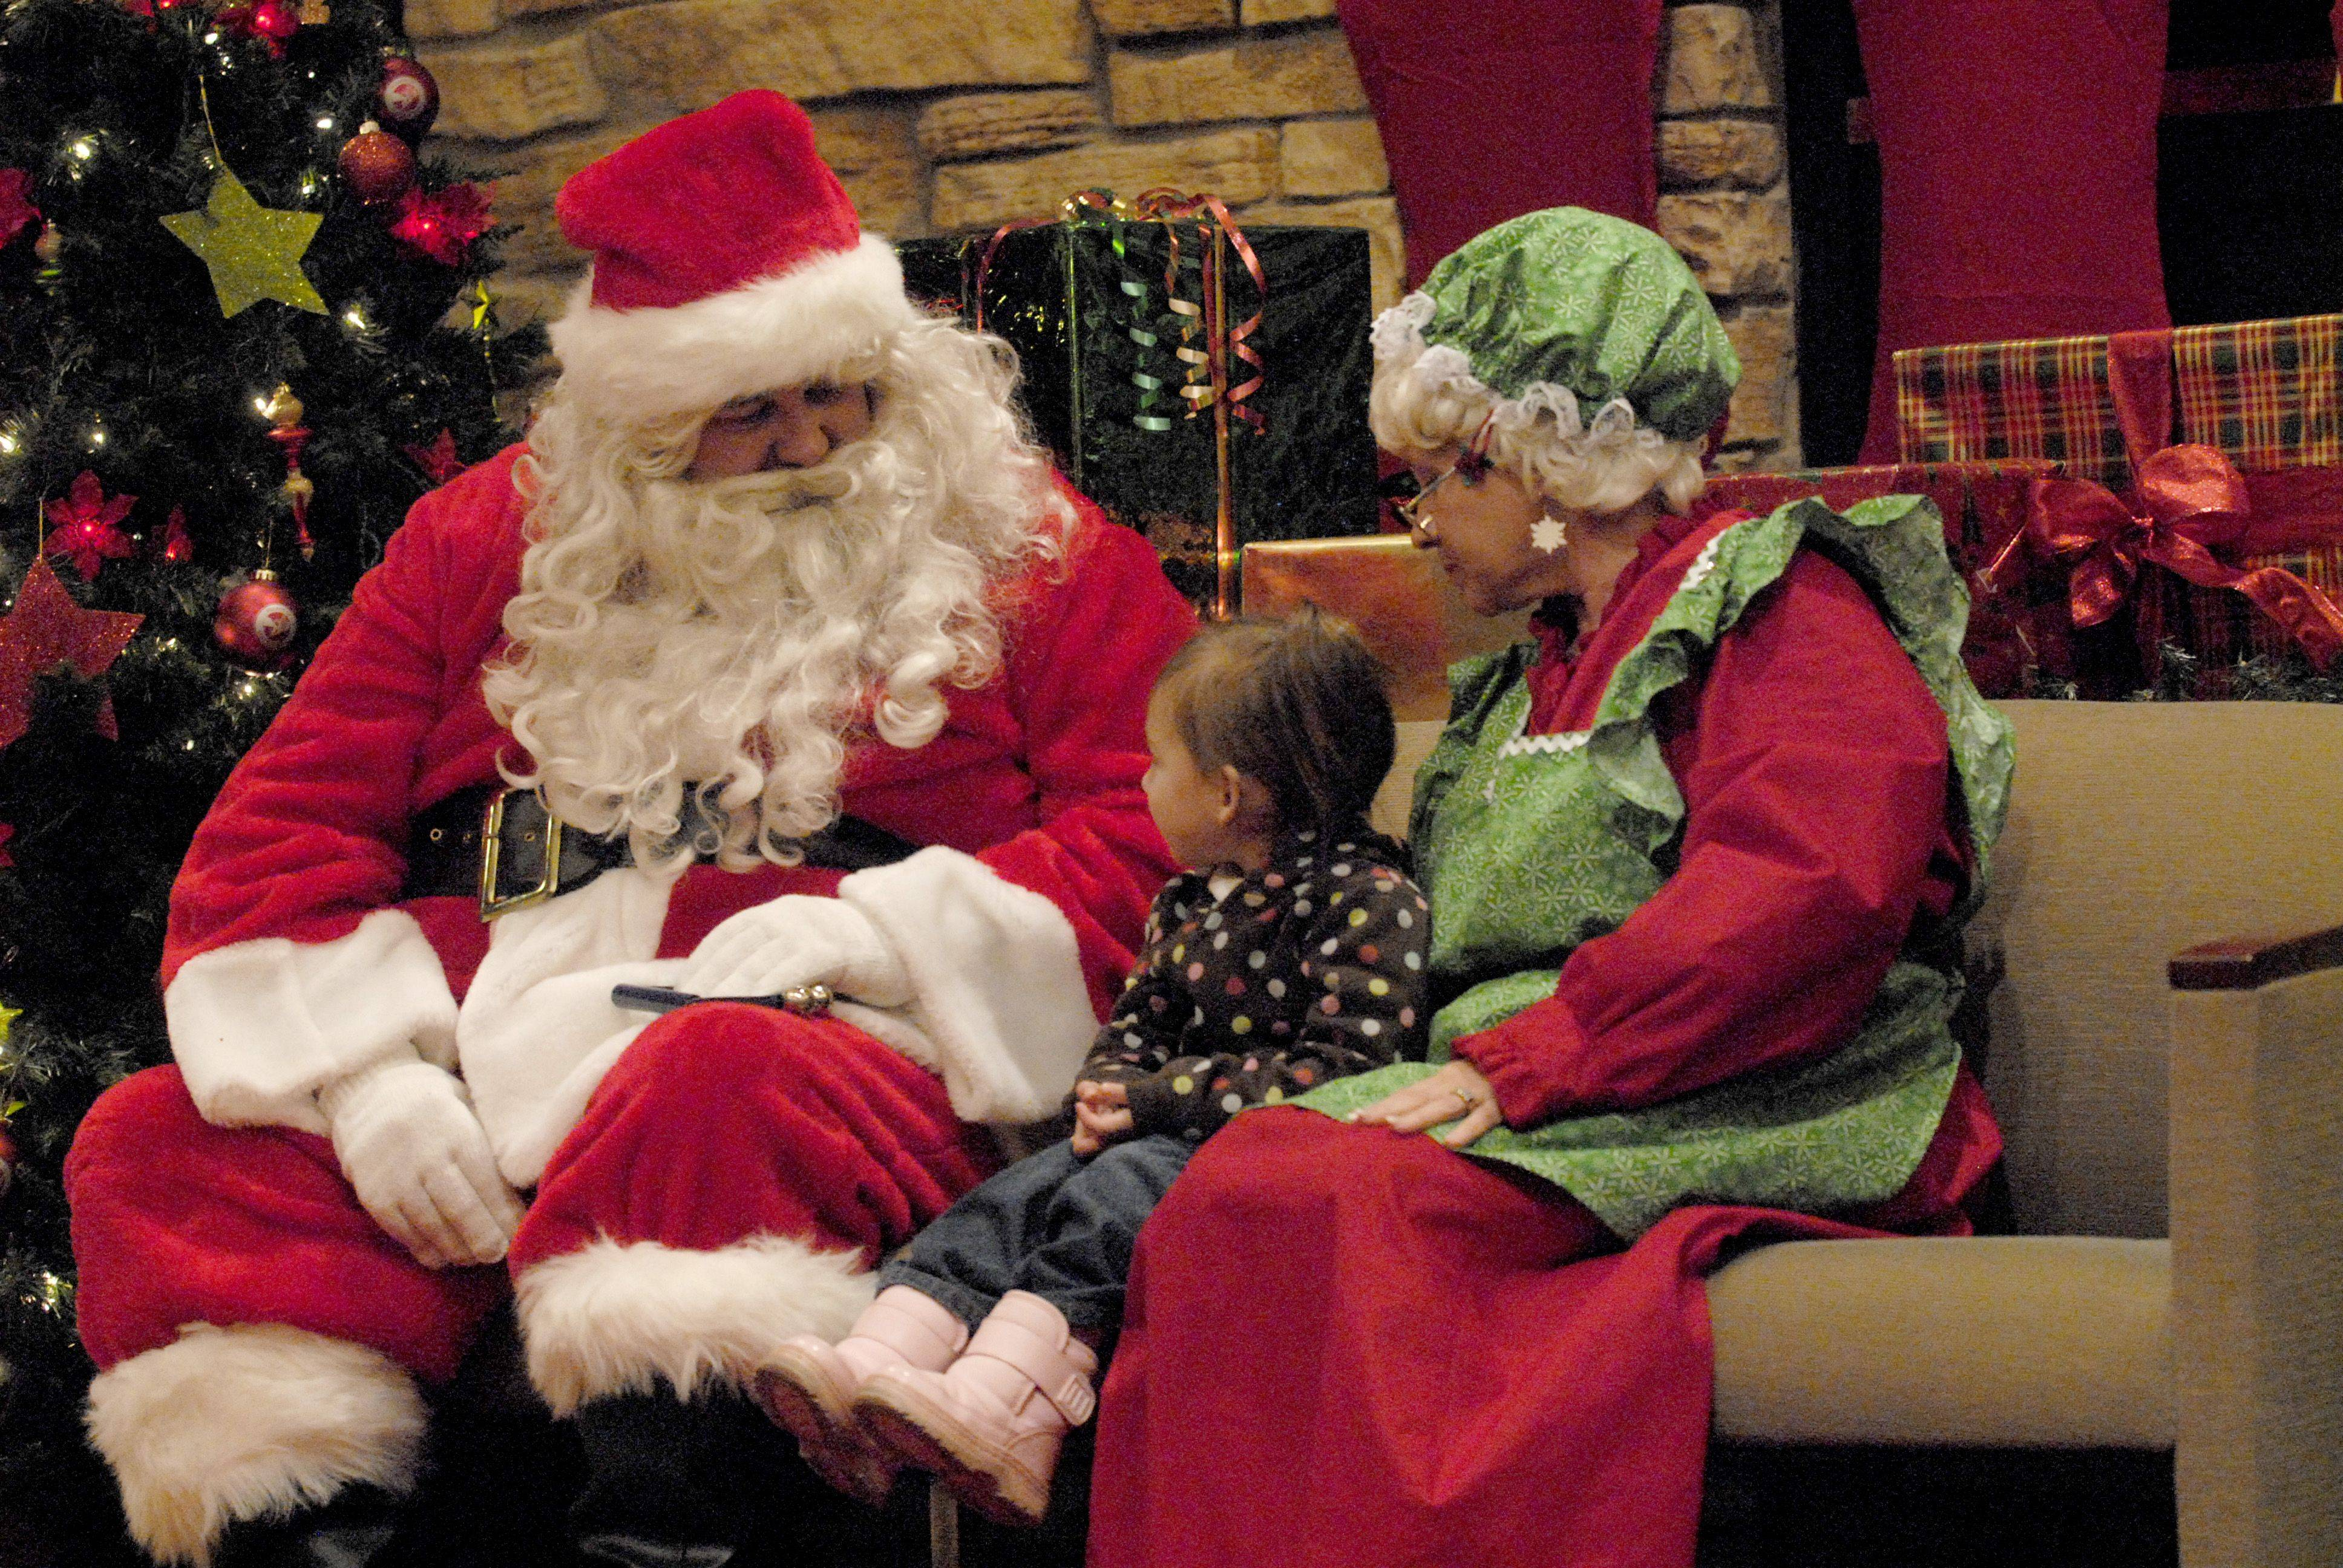 Ava Ramirez, 3, from Lake in the Hills explains to Santa and Mrs. Claus what she would like for Christmas during the Festival of Trees gathering Friday night at the Village Hall in Lake in the Hills.